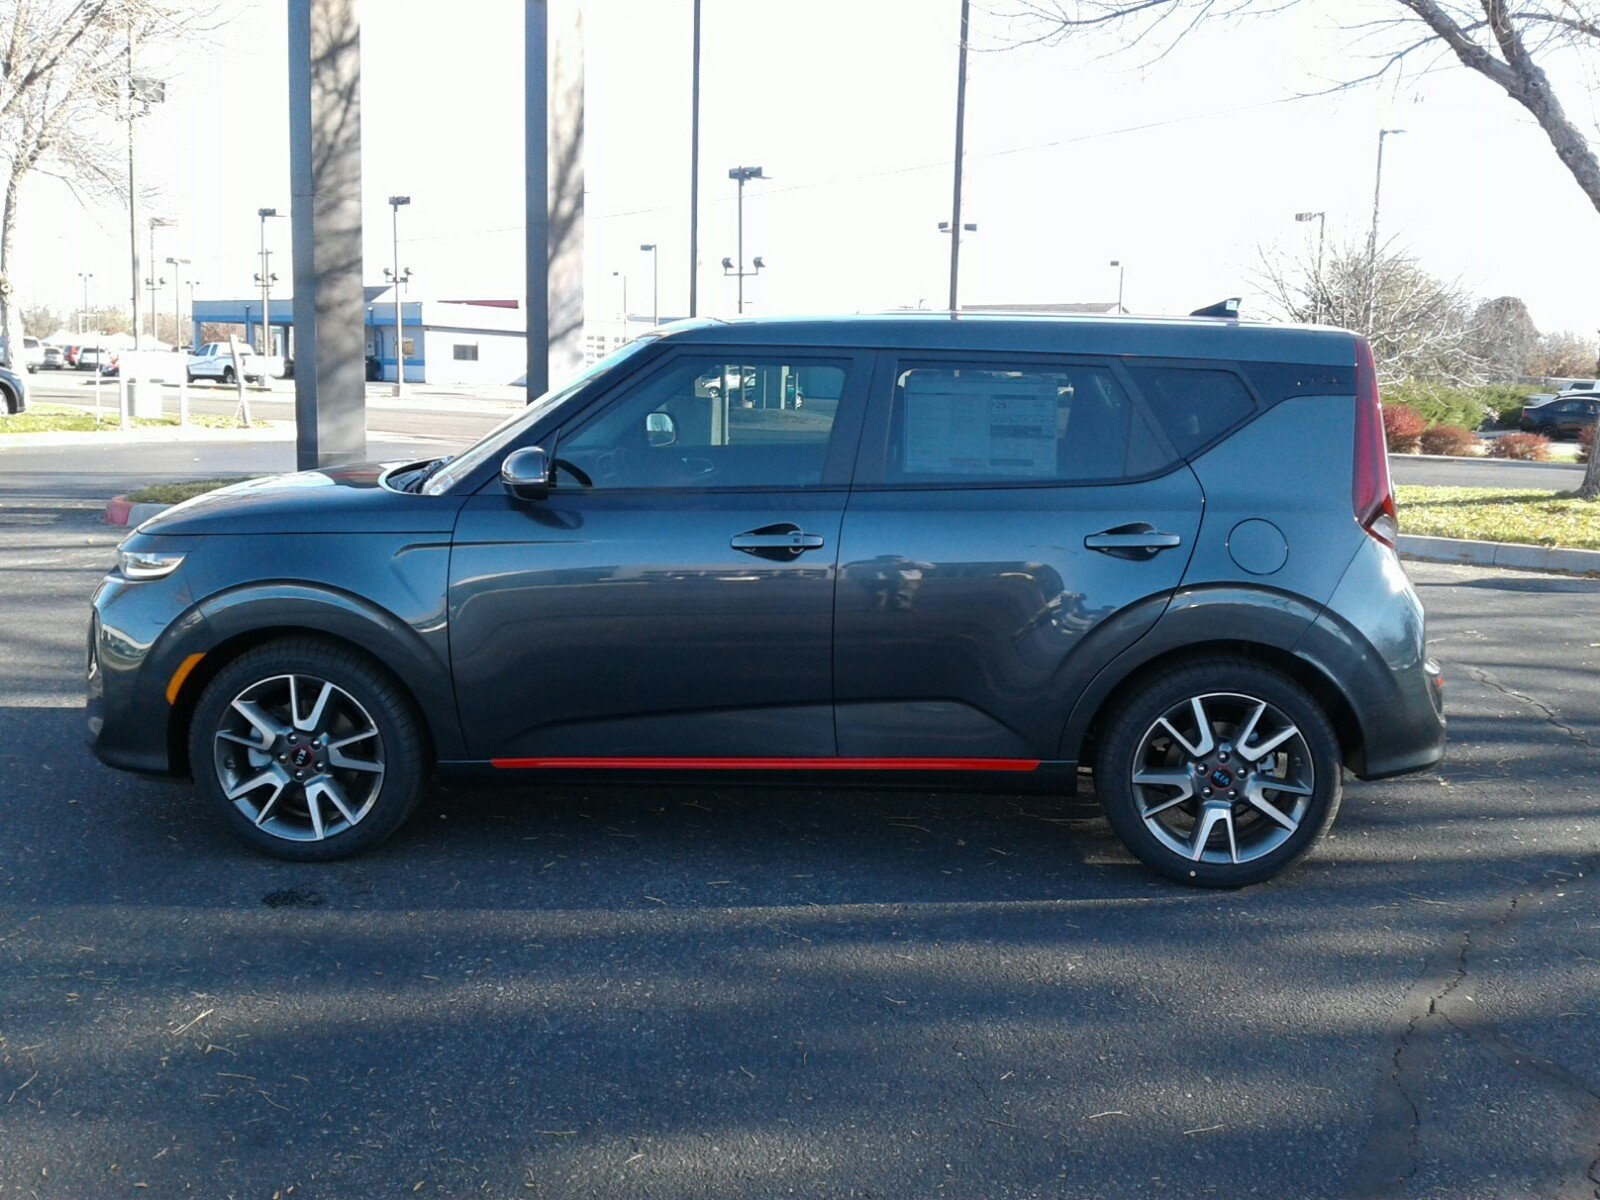 New 2020 Kia Soul Gt Line Turbo Hatchback In Boise K2l217